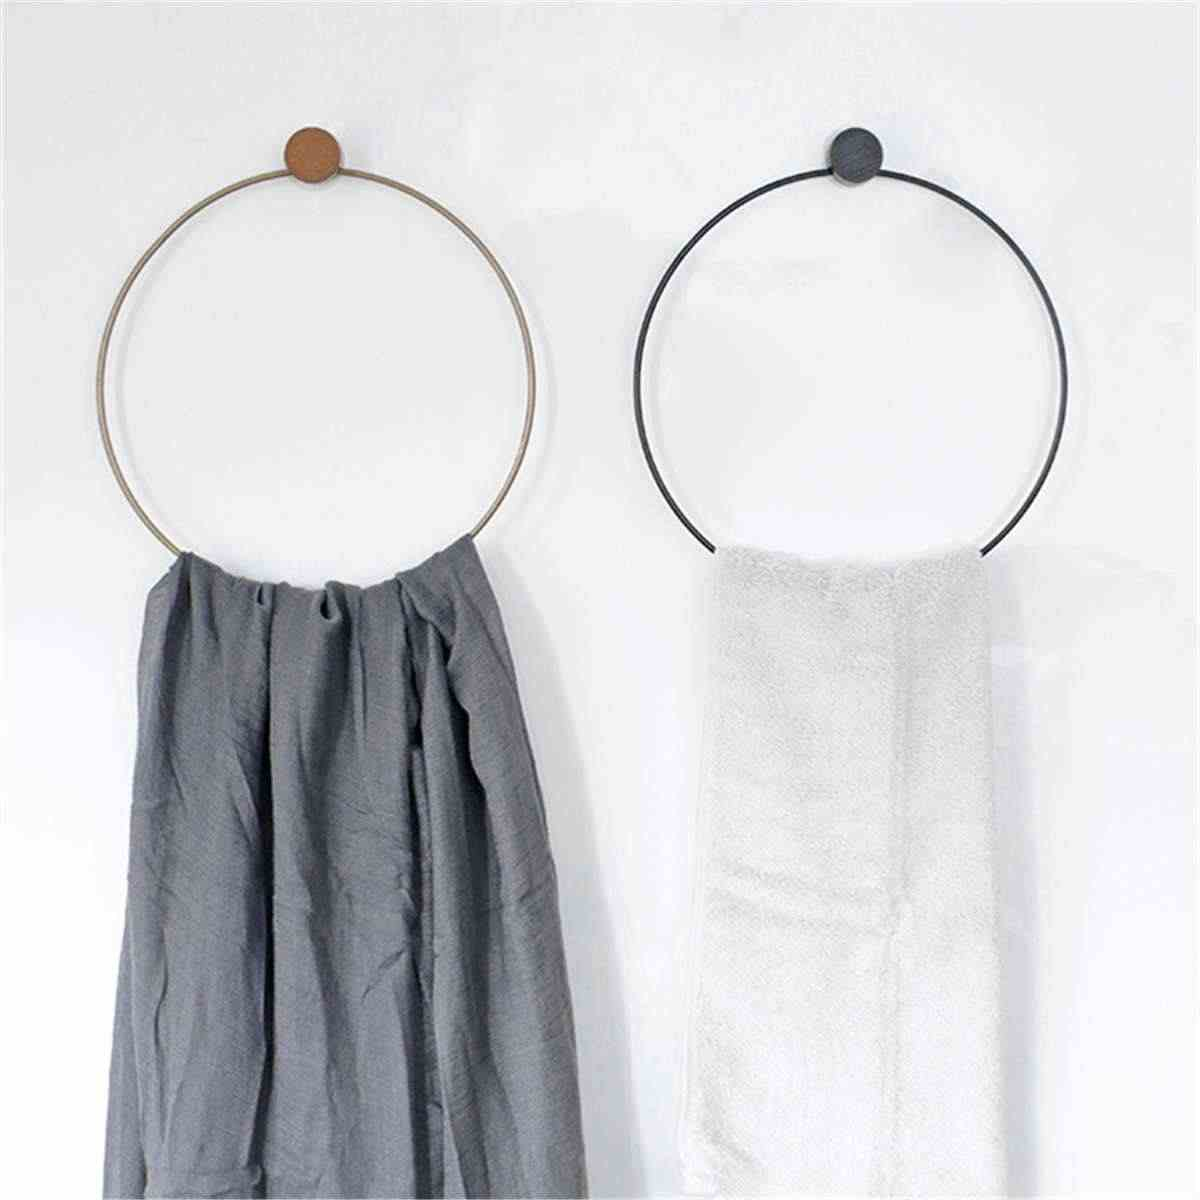 Nordic Simple Bathroom Towel Rack Hang Ring Round Decorative Shelving No Trace Installation Iron Wood Towel Holder 2 Colors